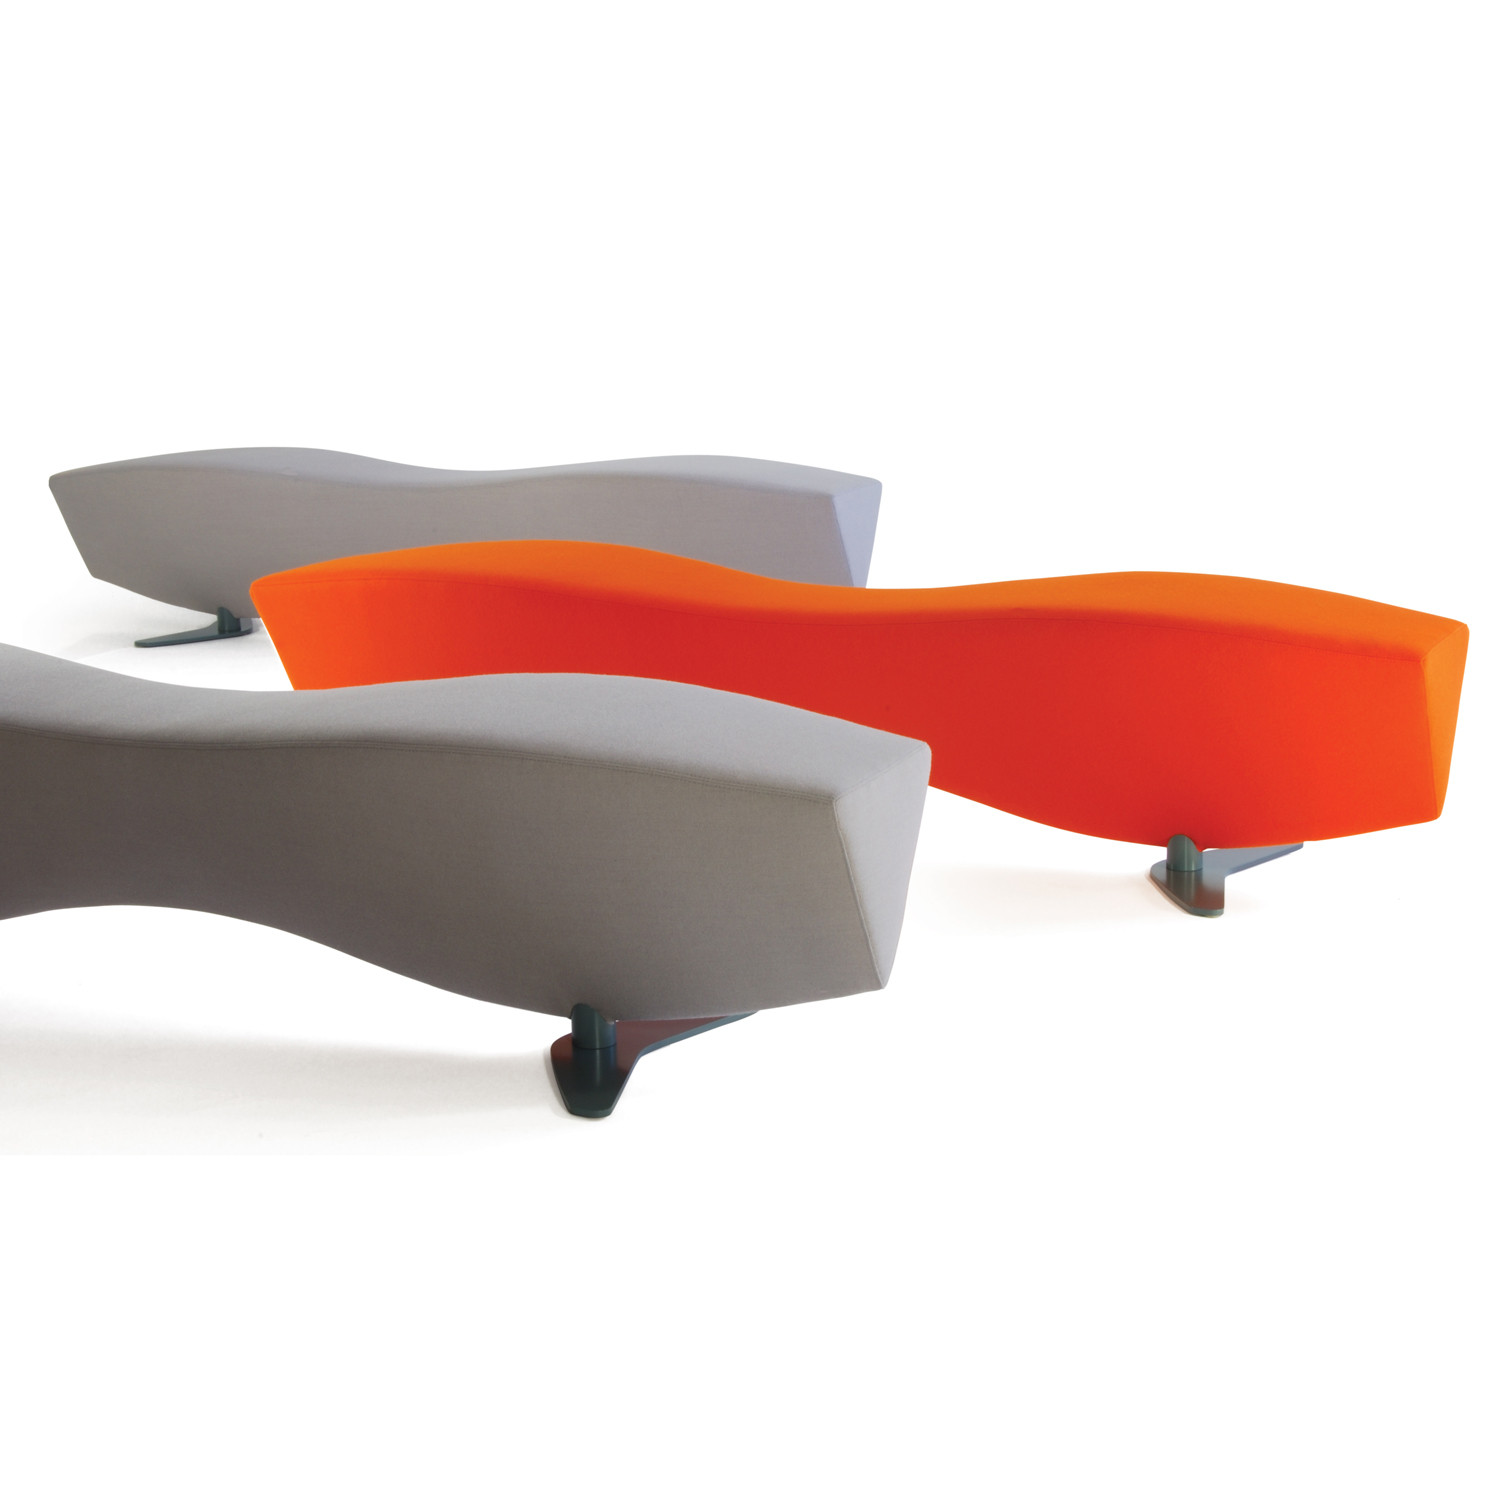 Hm88 Soft Seating Benching